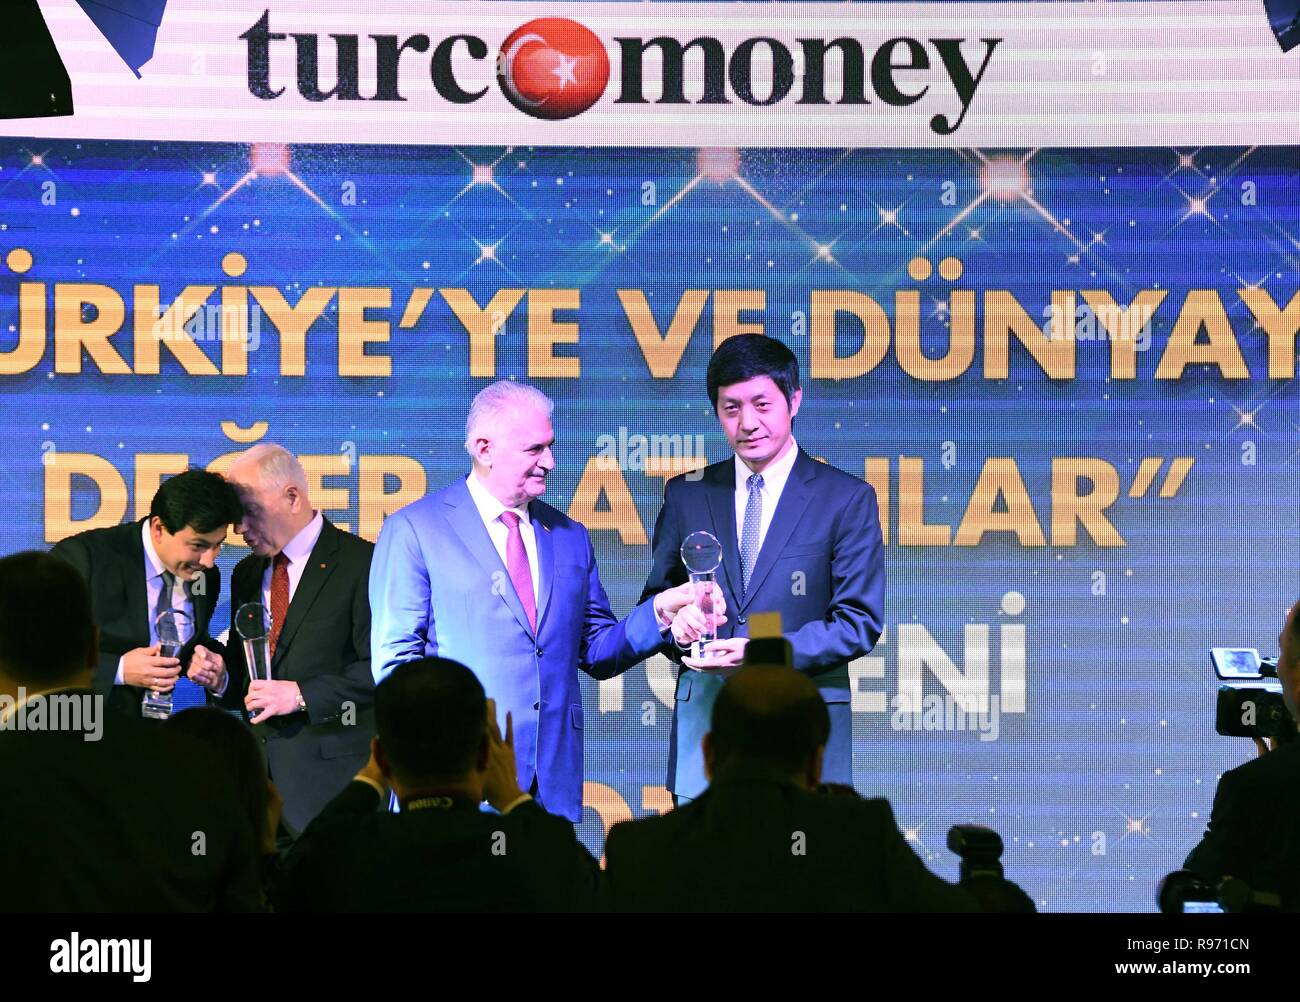 Istanbul, Turkey. 20th Dec, 2018. Binali Yildirim (2nd R), speaker of the Grand National Assembly of Turkey, grants the award of 'International Bank of the Year' to Gao Xiangyang (1st R), chairman of ICBC Turkey, at an awarding ceremony in Istanbul, Turkey, Dec. 20, 2018. ICBC Turkey, a branch of the Industrial and Commercial Bank of China (ICBC), on Thursday was named the 'International Bank of the Year' for its 'distinguished contributions' to Turkey's economy. Credit: Xu Suhui/Xinhua/Alamy Live News - Stock Image